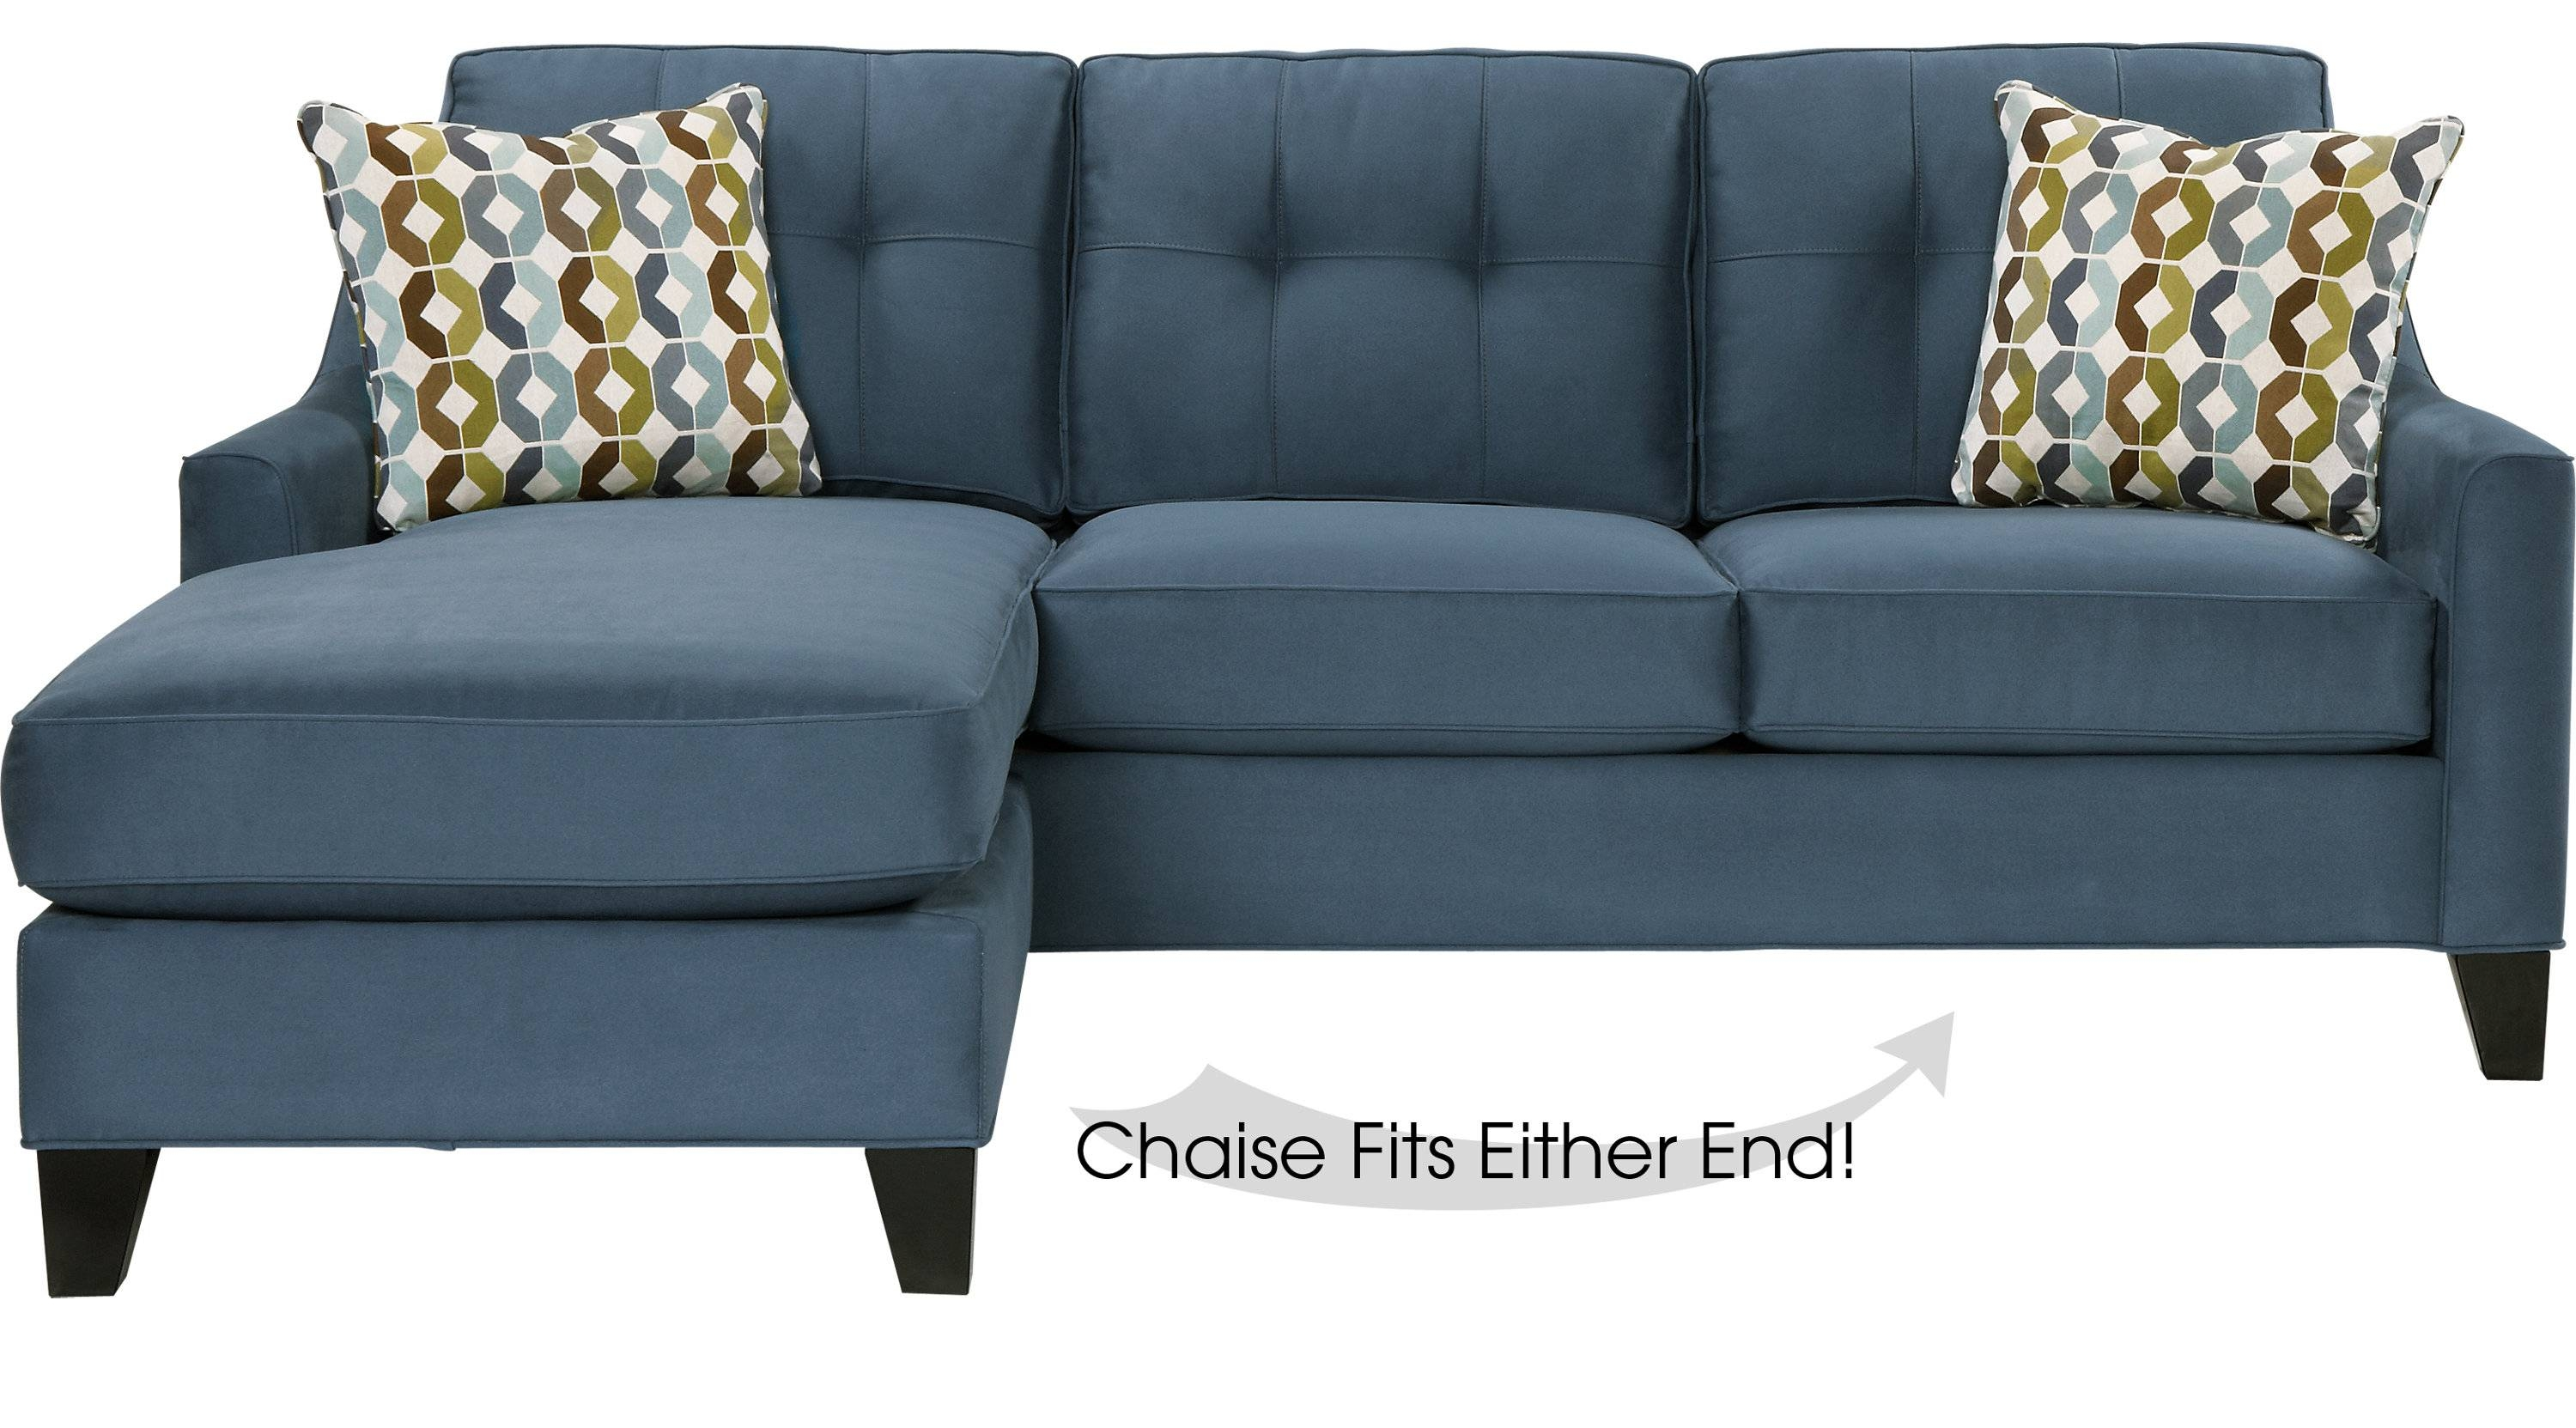 Living Room: Using Elegant Cindy Crawford Sectional Sofa For With Cindy Crawford Furniture Sectional Sofas (View 15 of 15)